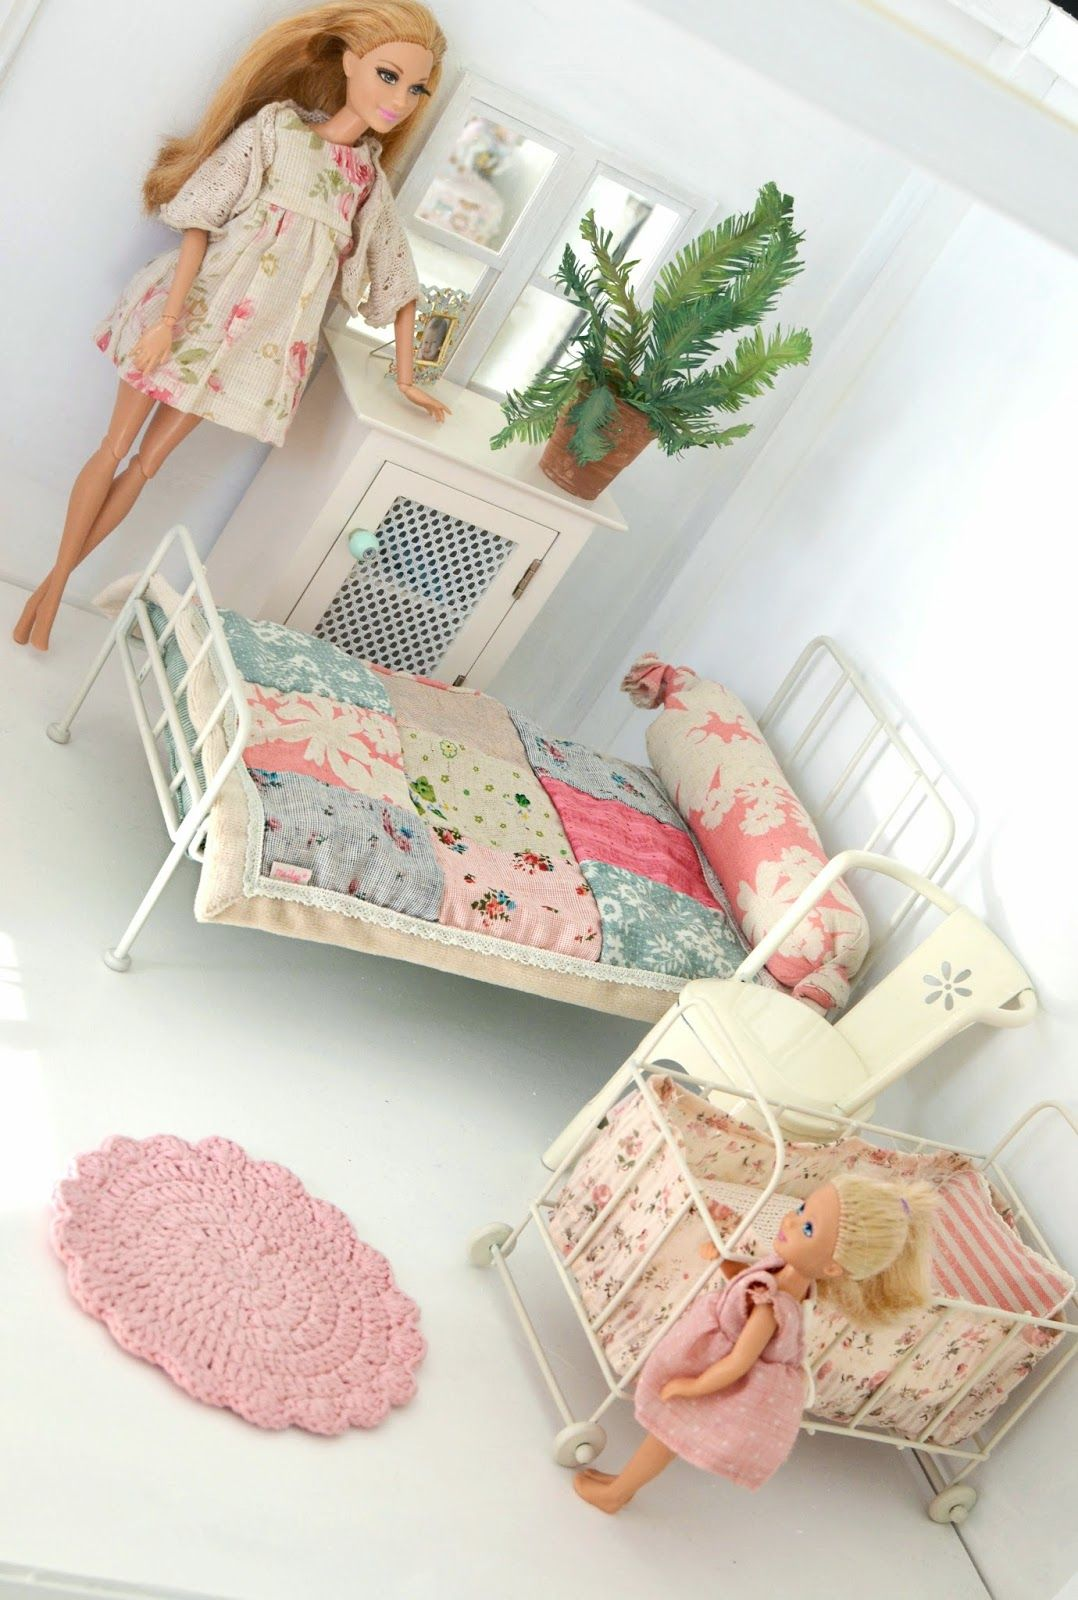 Maileg furniture used with Barbie | Maileg | Pinterest | Doll houses ...